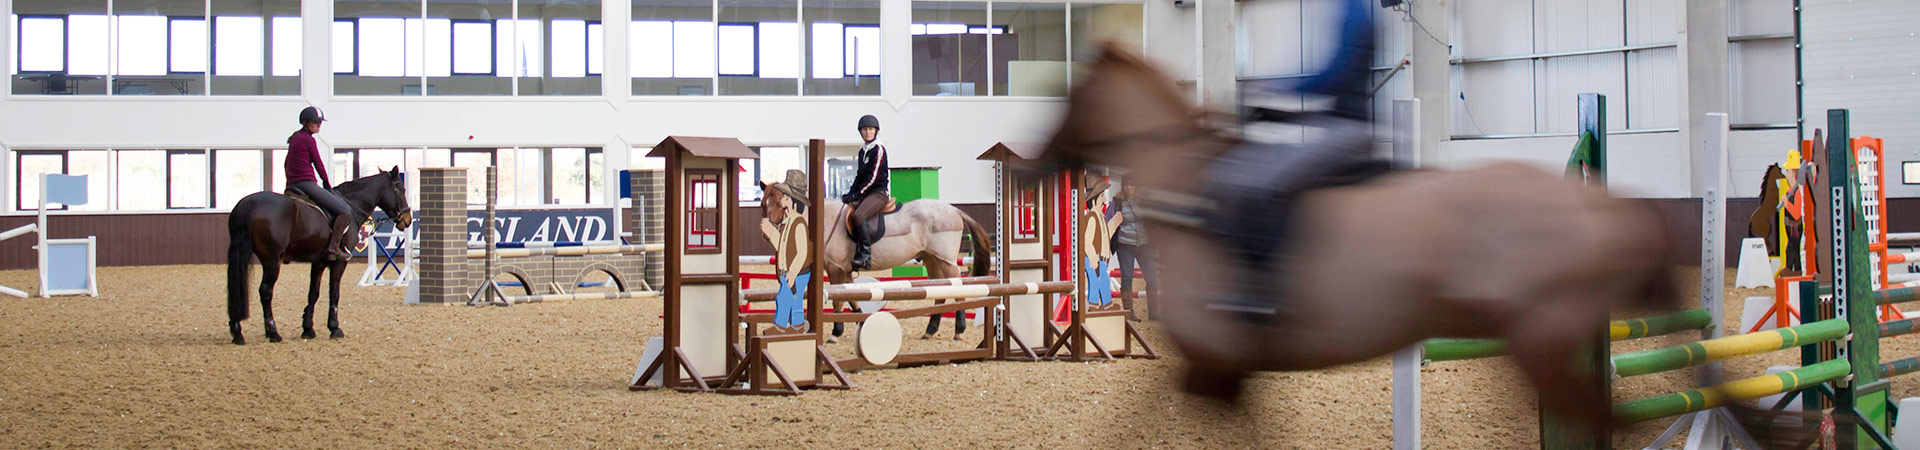 Bury Farm Equestrian Village, Leighton Buzzard